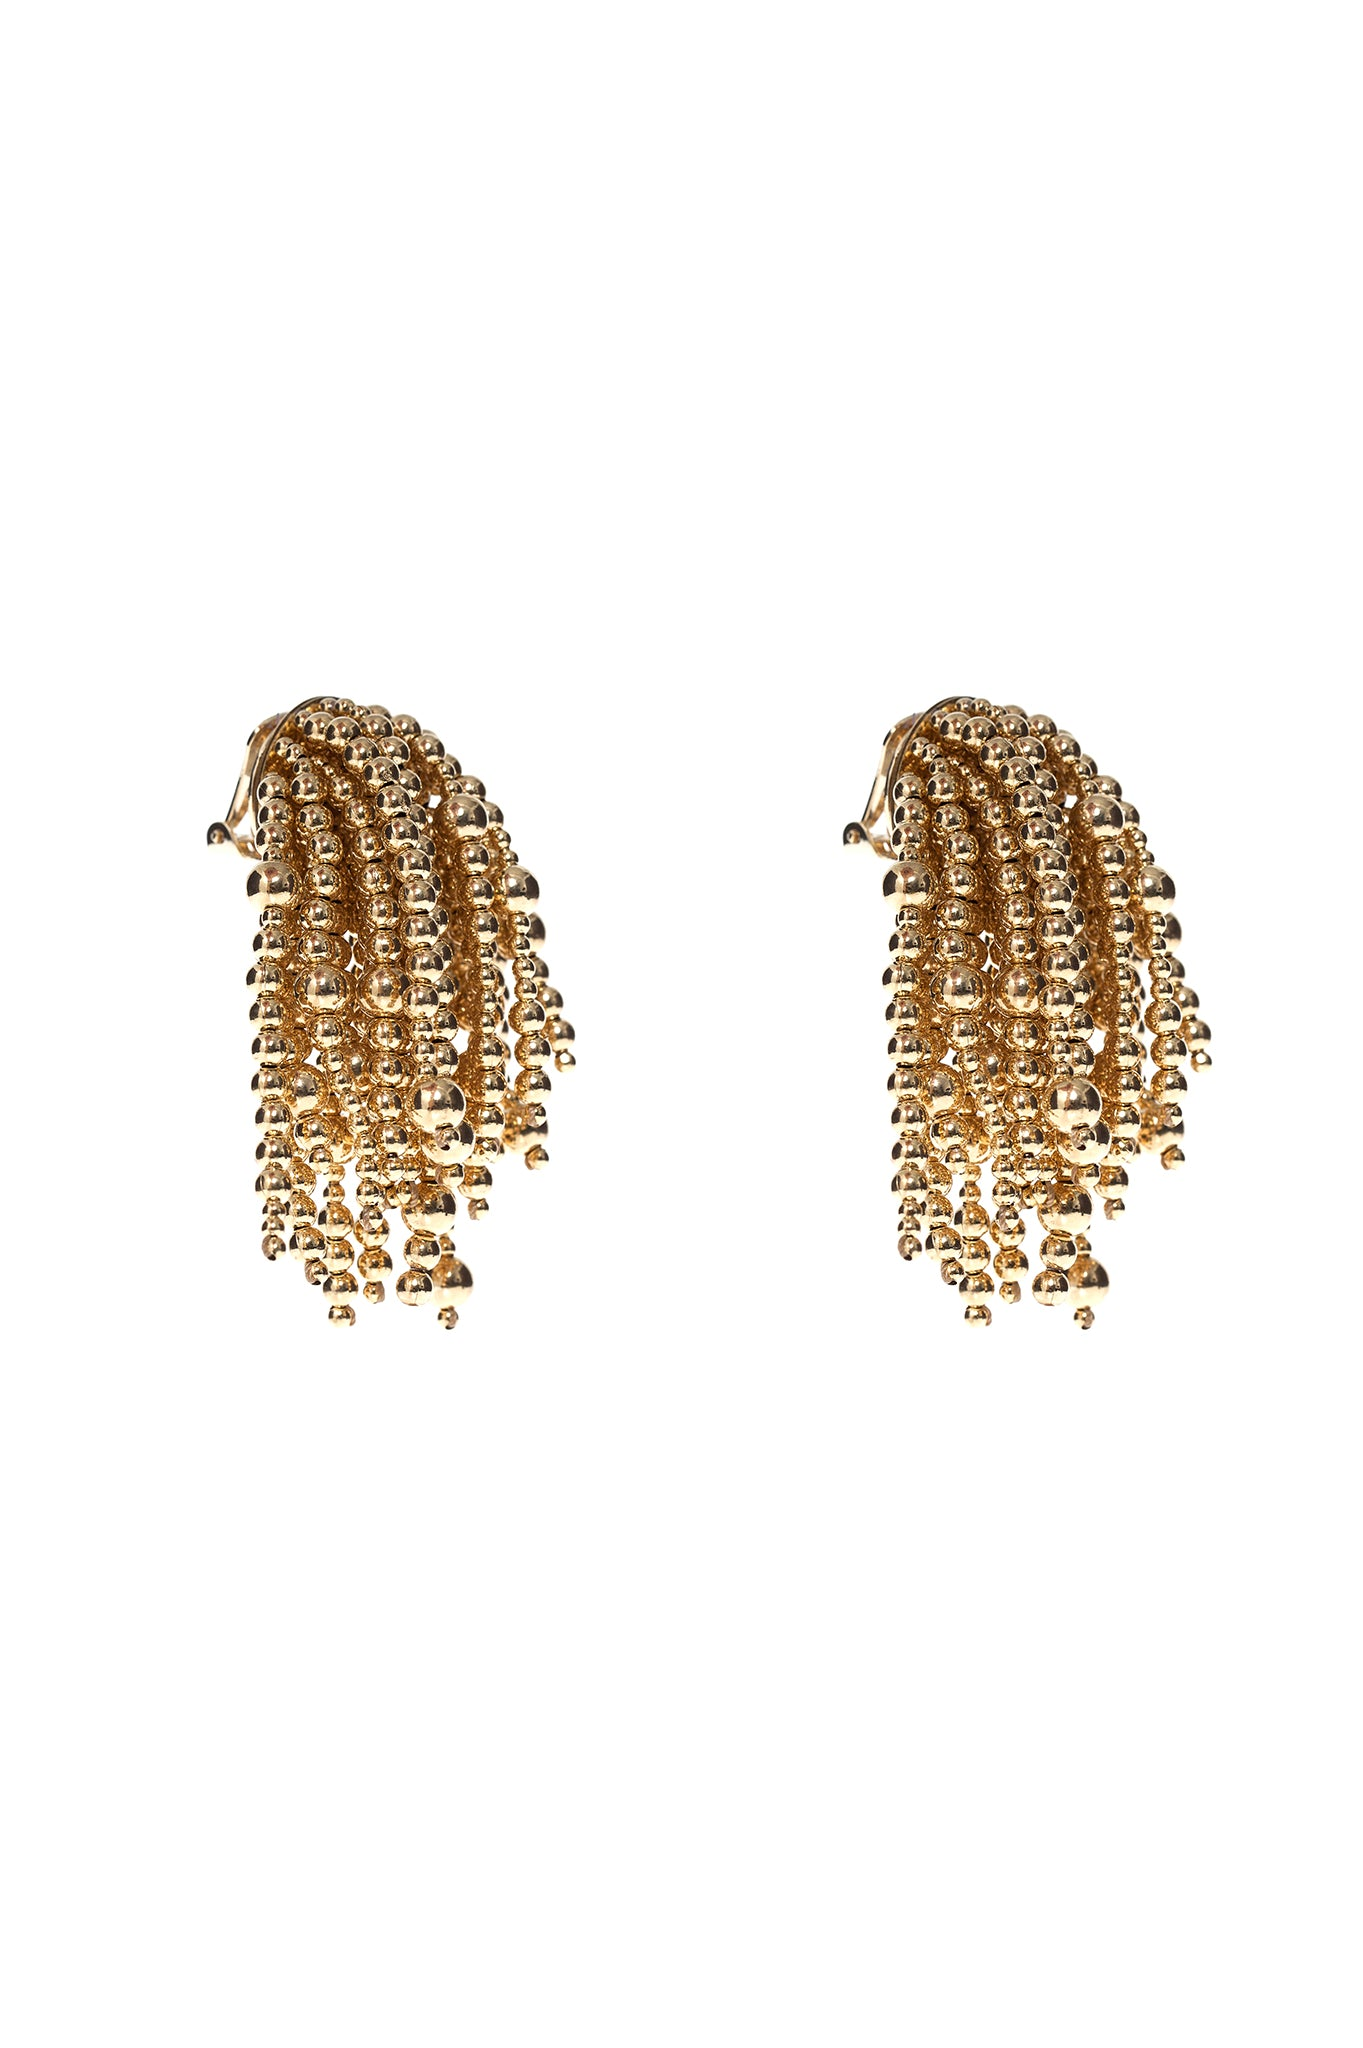 GOLD URCHIN EARRINGS